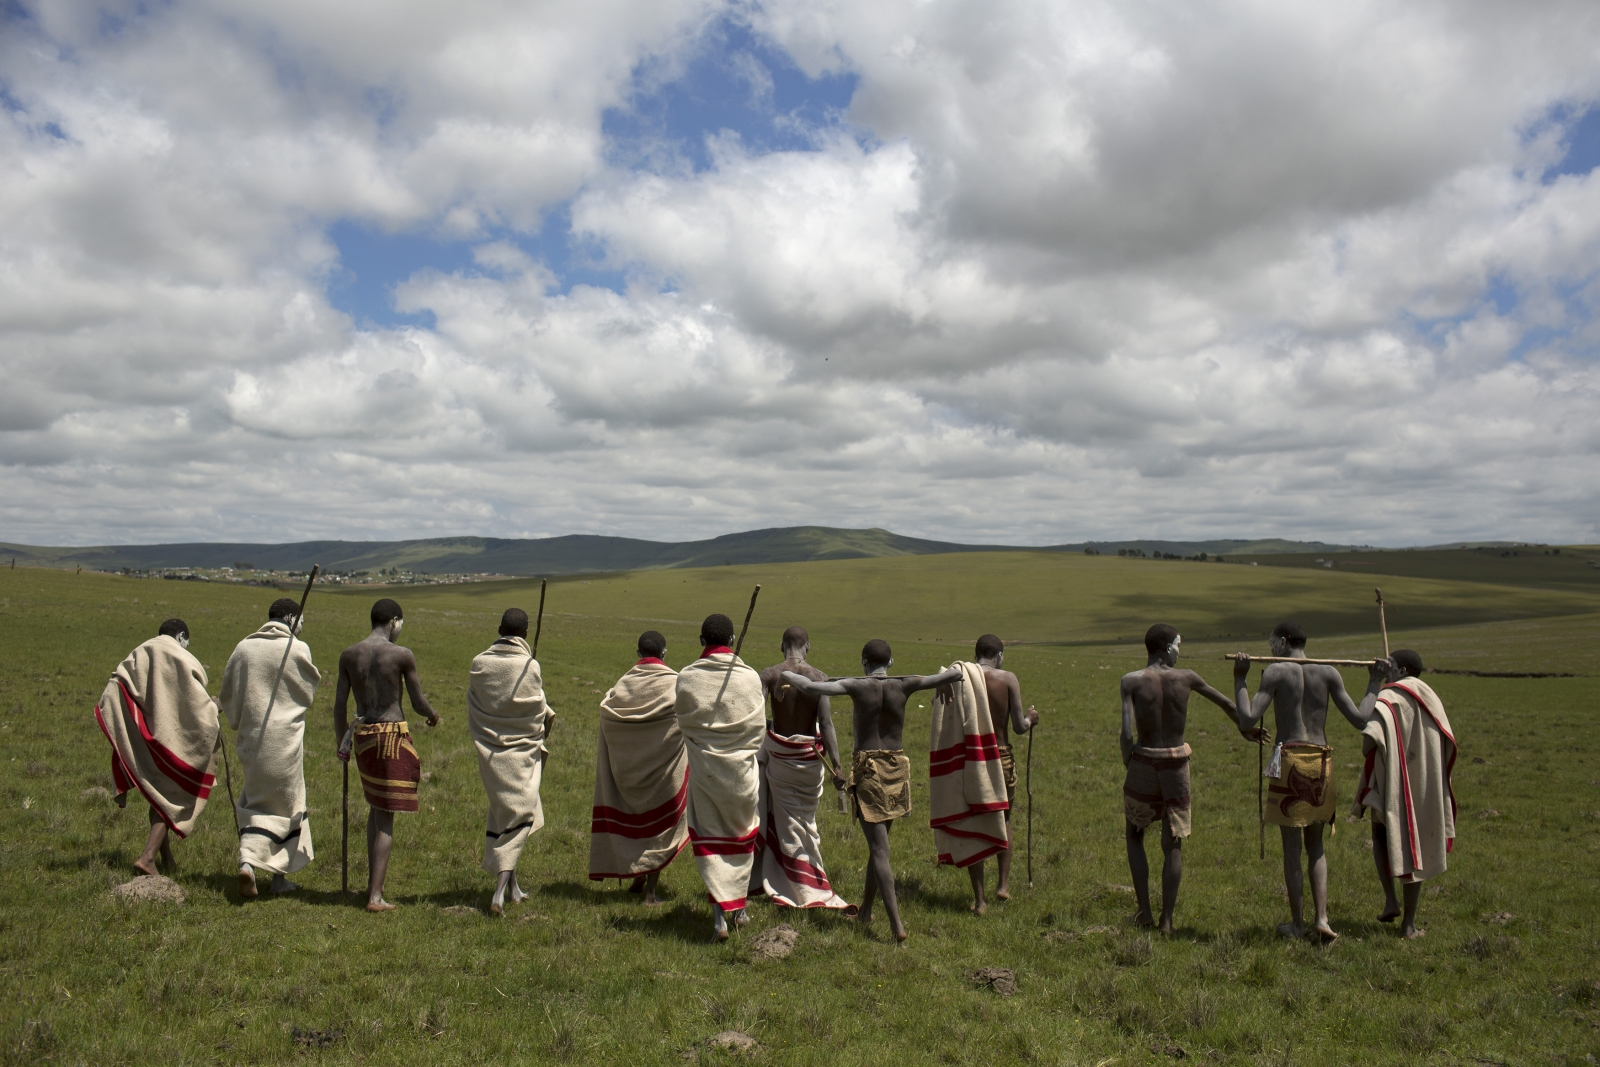 Circumcision initiates pose as they walk on a field in Qunu, in the Eastern Cape